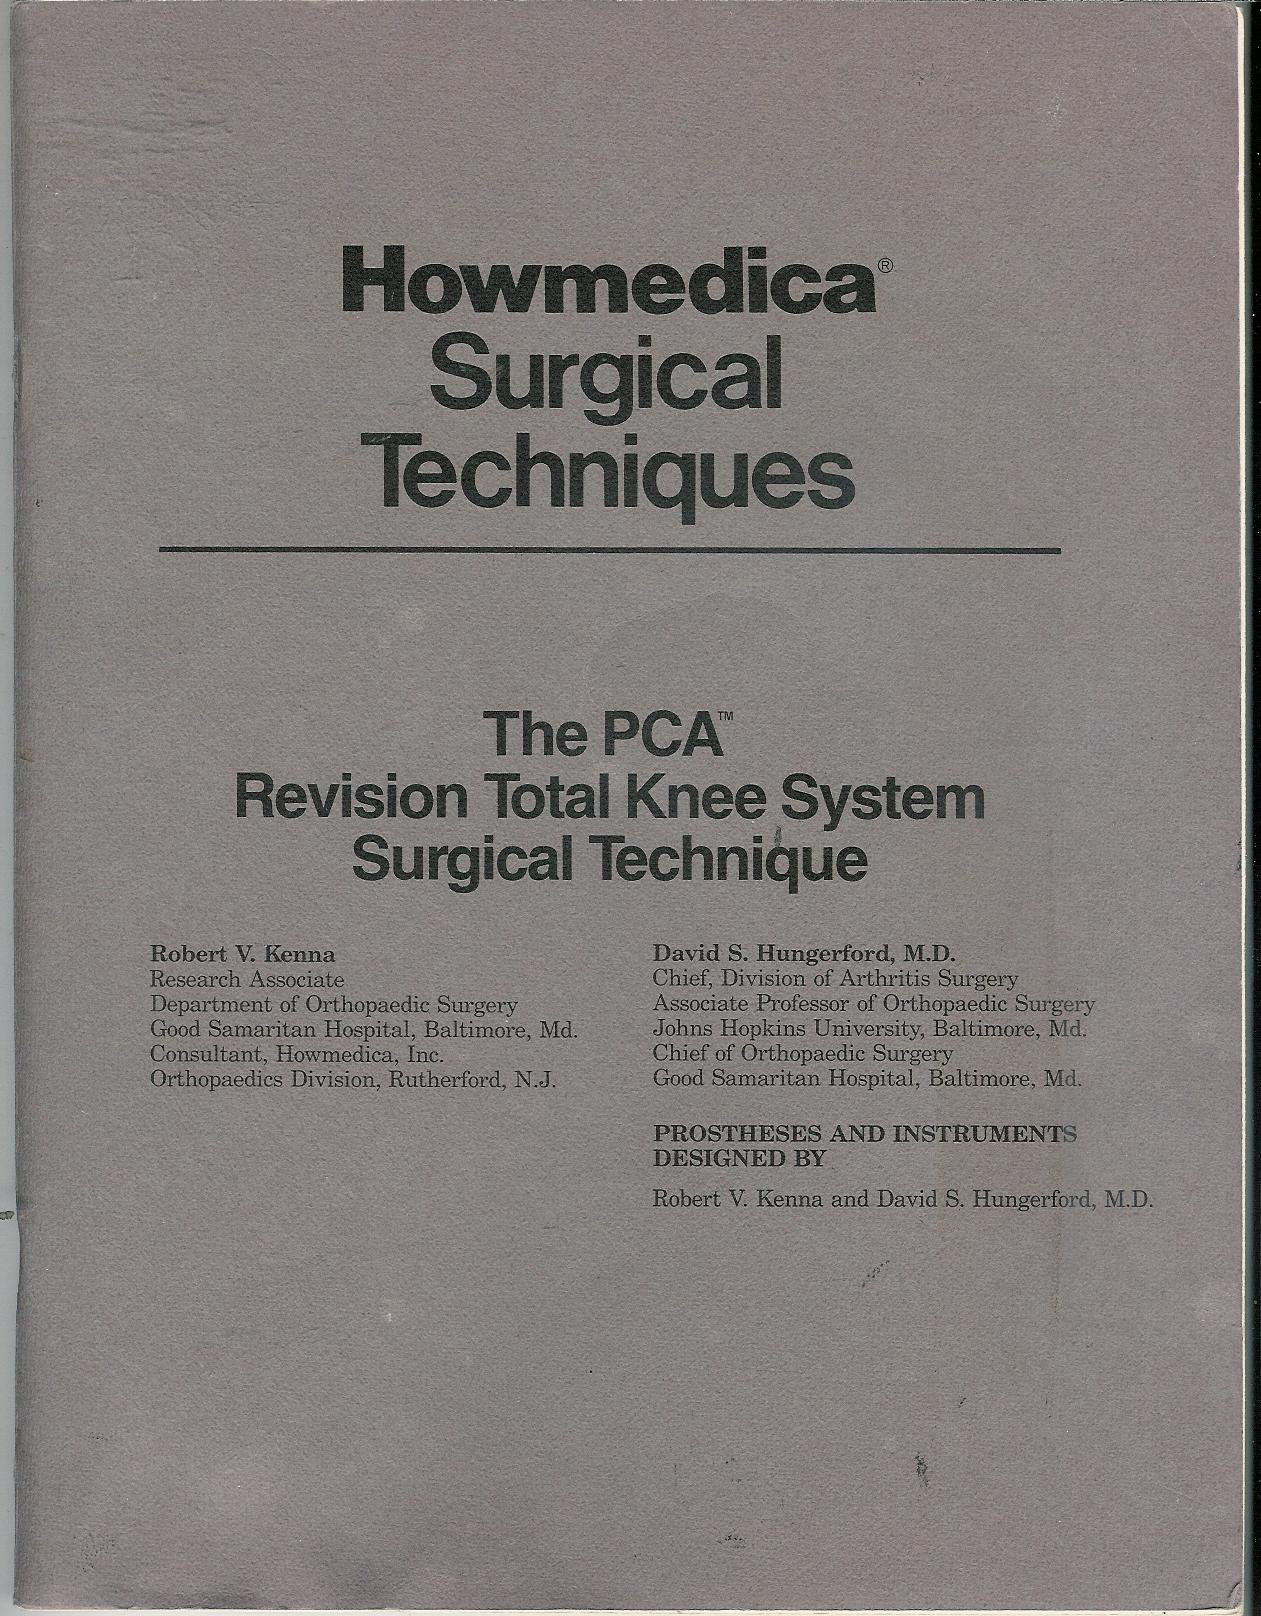 The P C A  Revision Total Knee System Surgical Technique